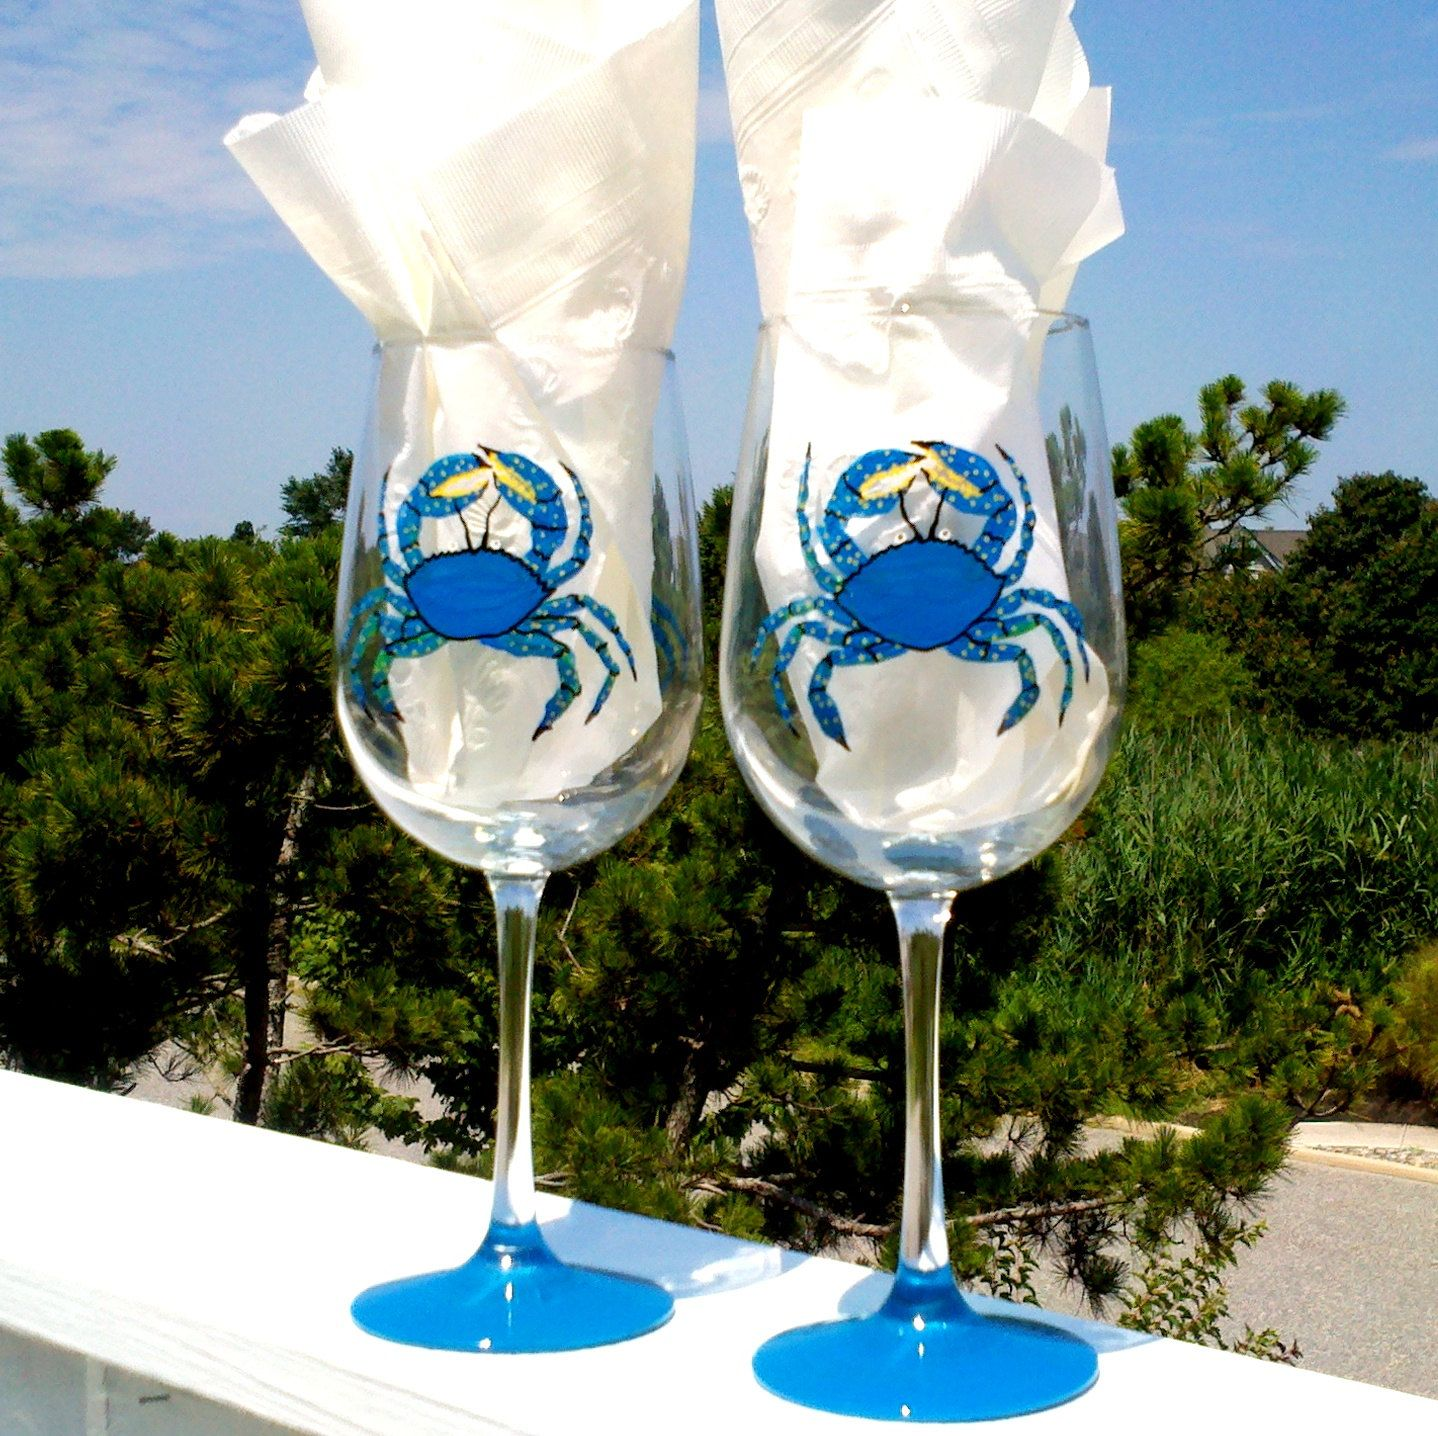 Crab hand painted wine glasses.